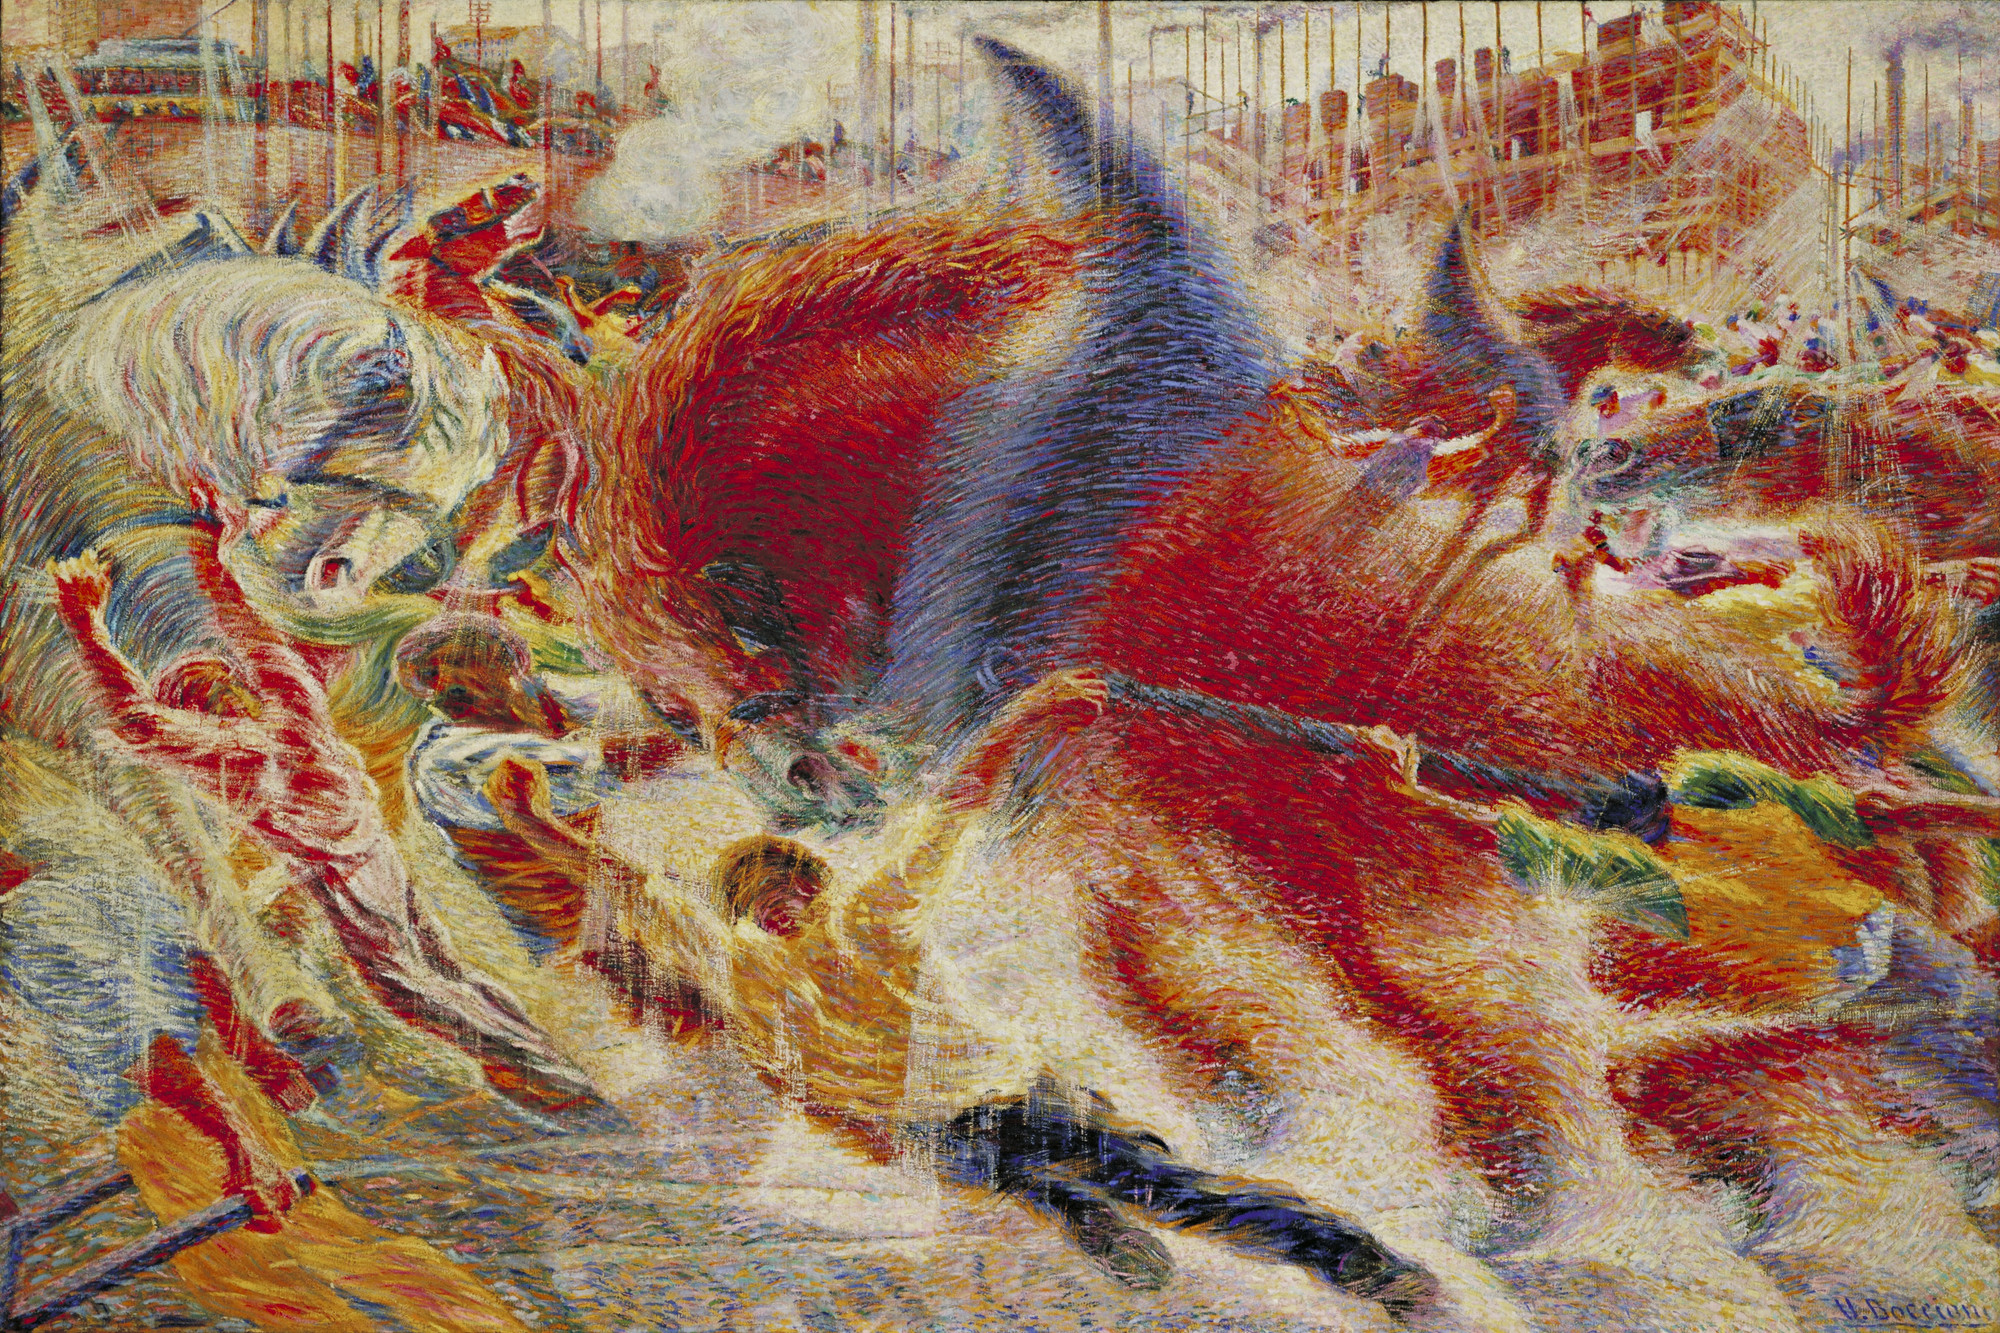 Umberto Boccioni. The City Rises. 1910